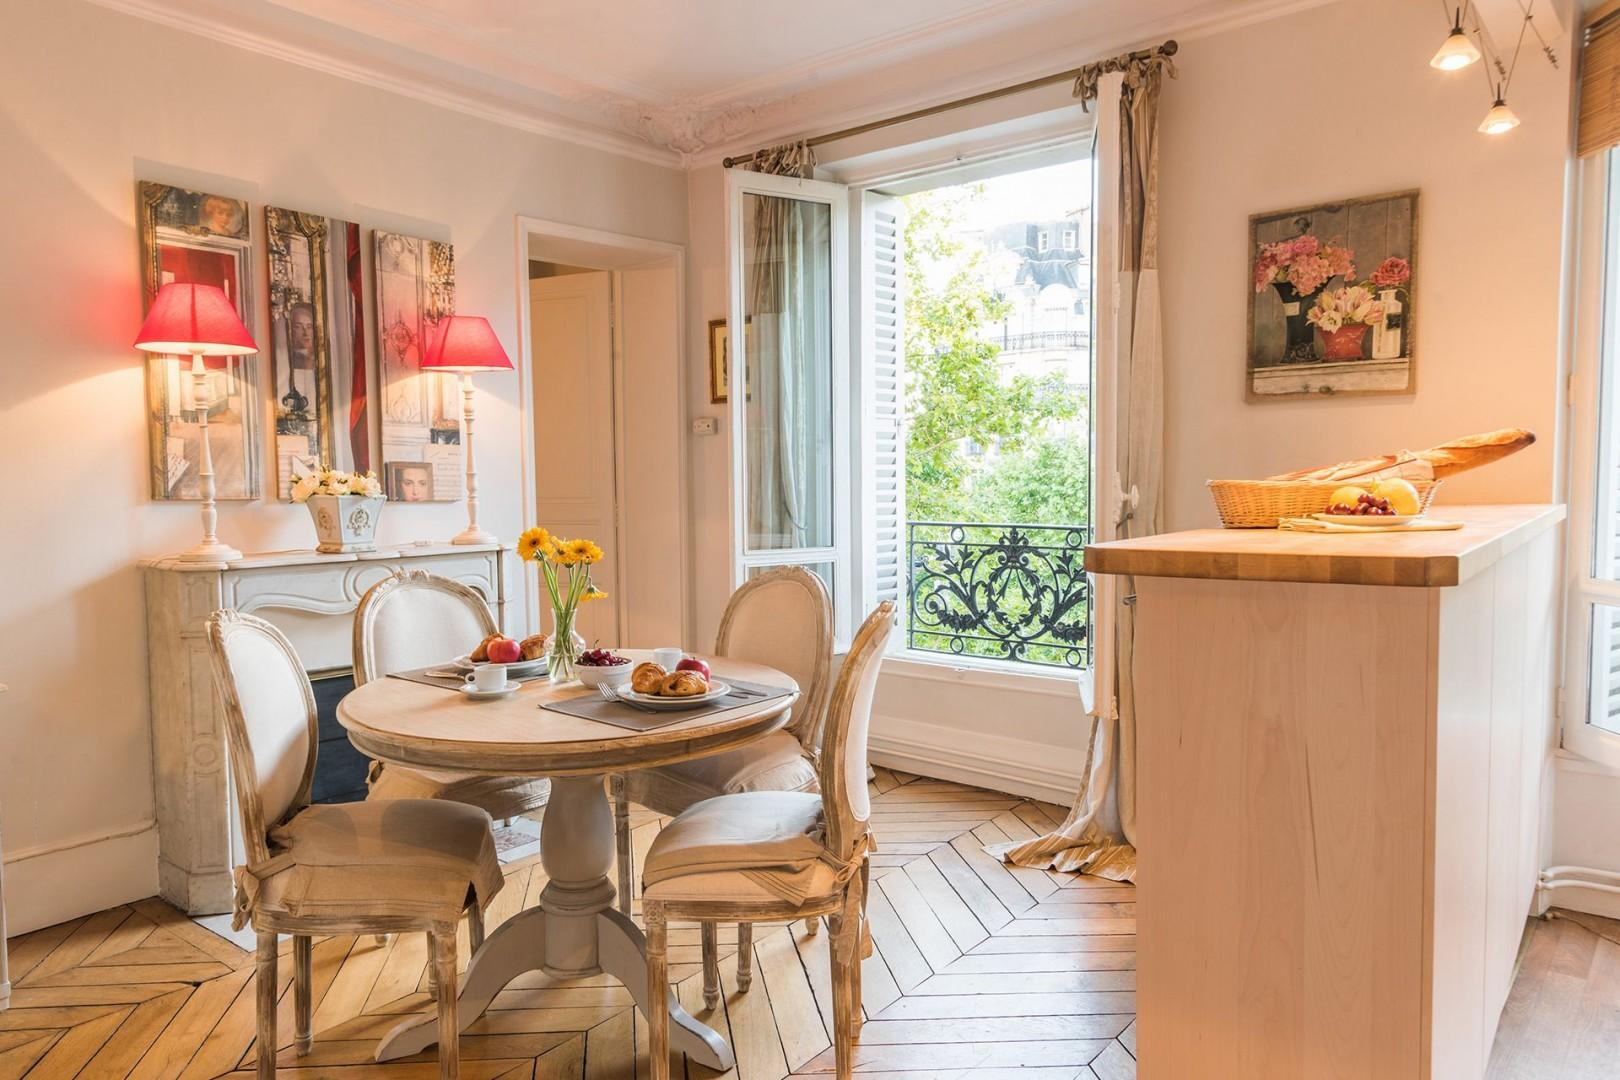 Start your day in the bright and airy dining area and kitchen.